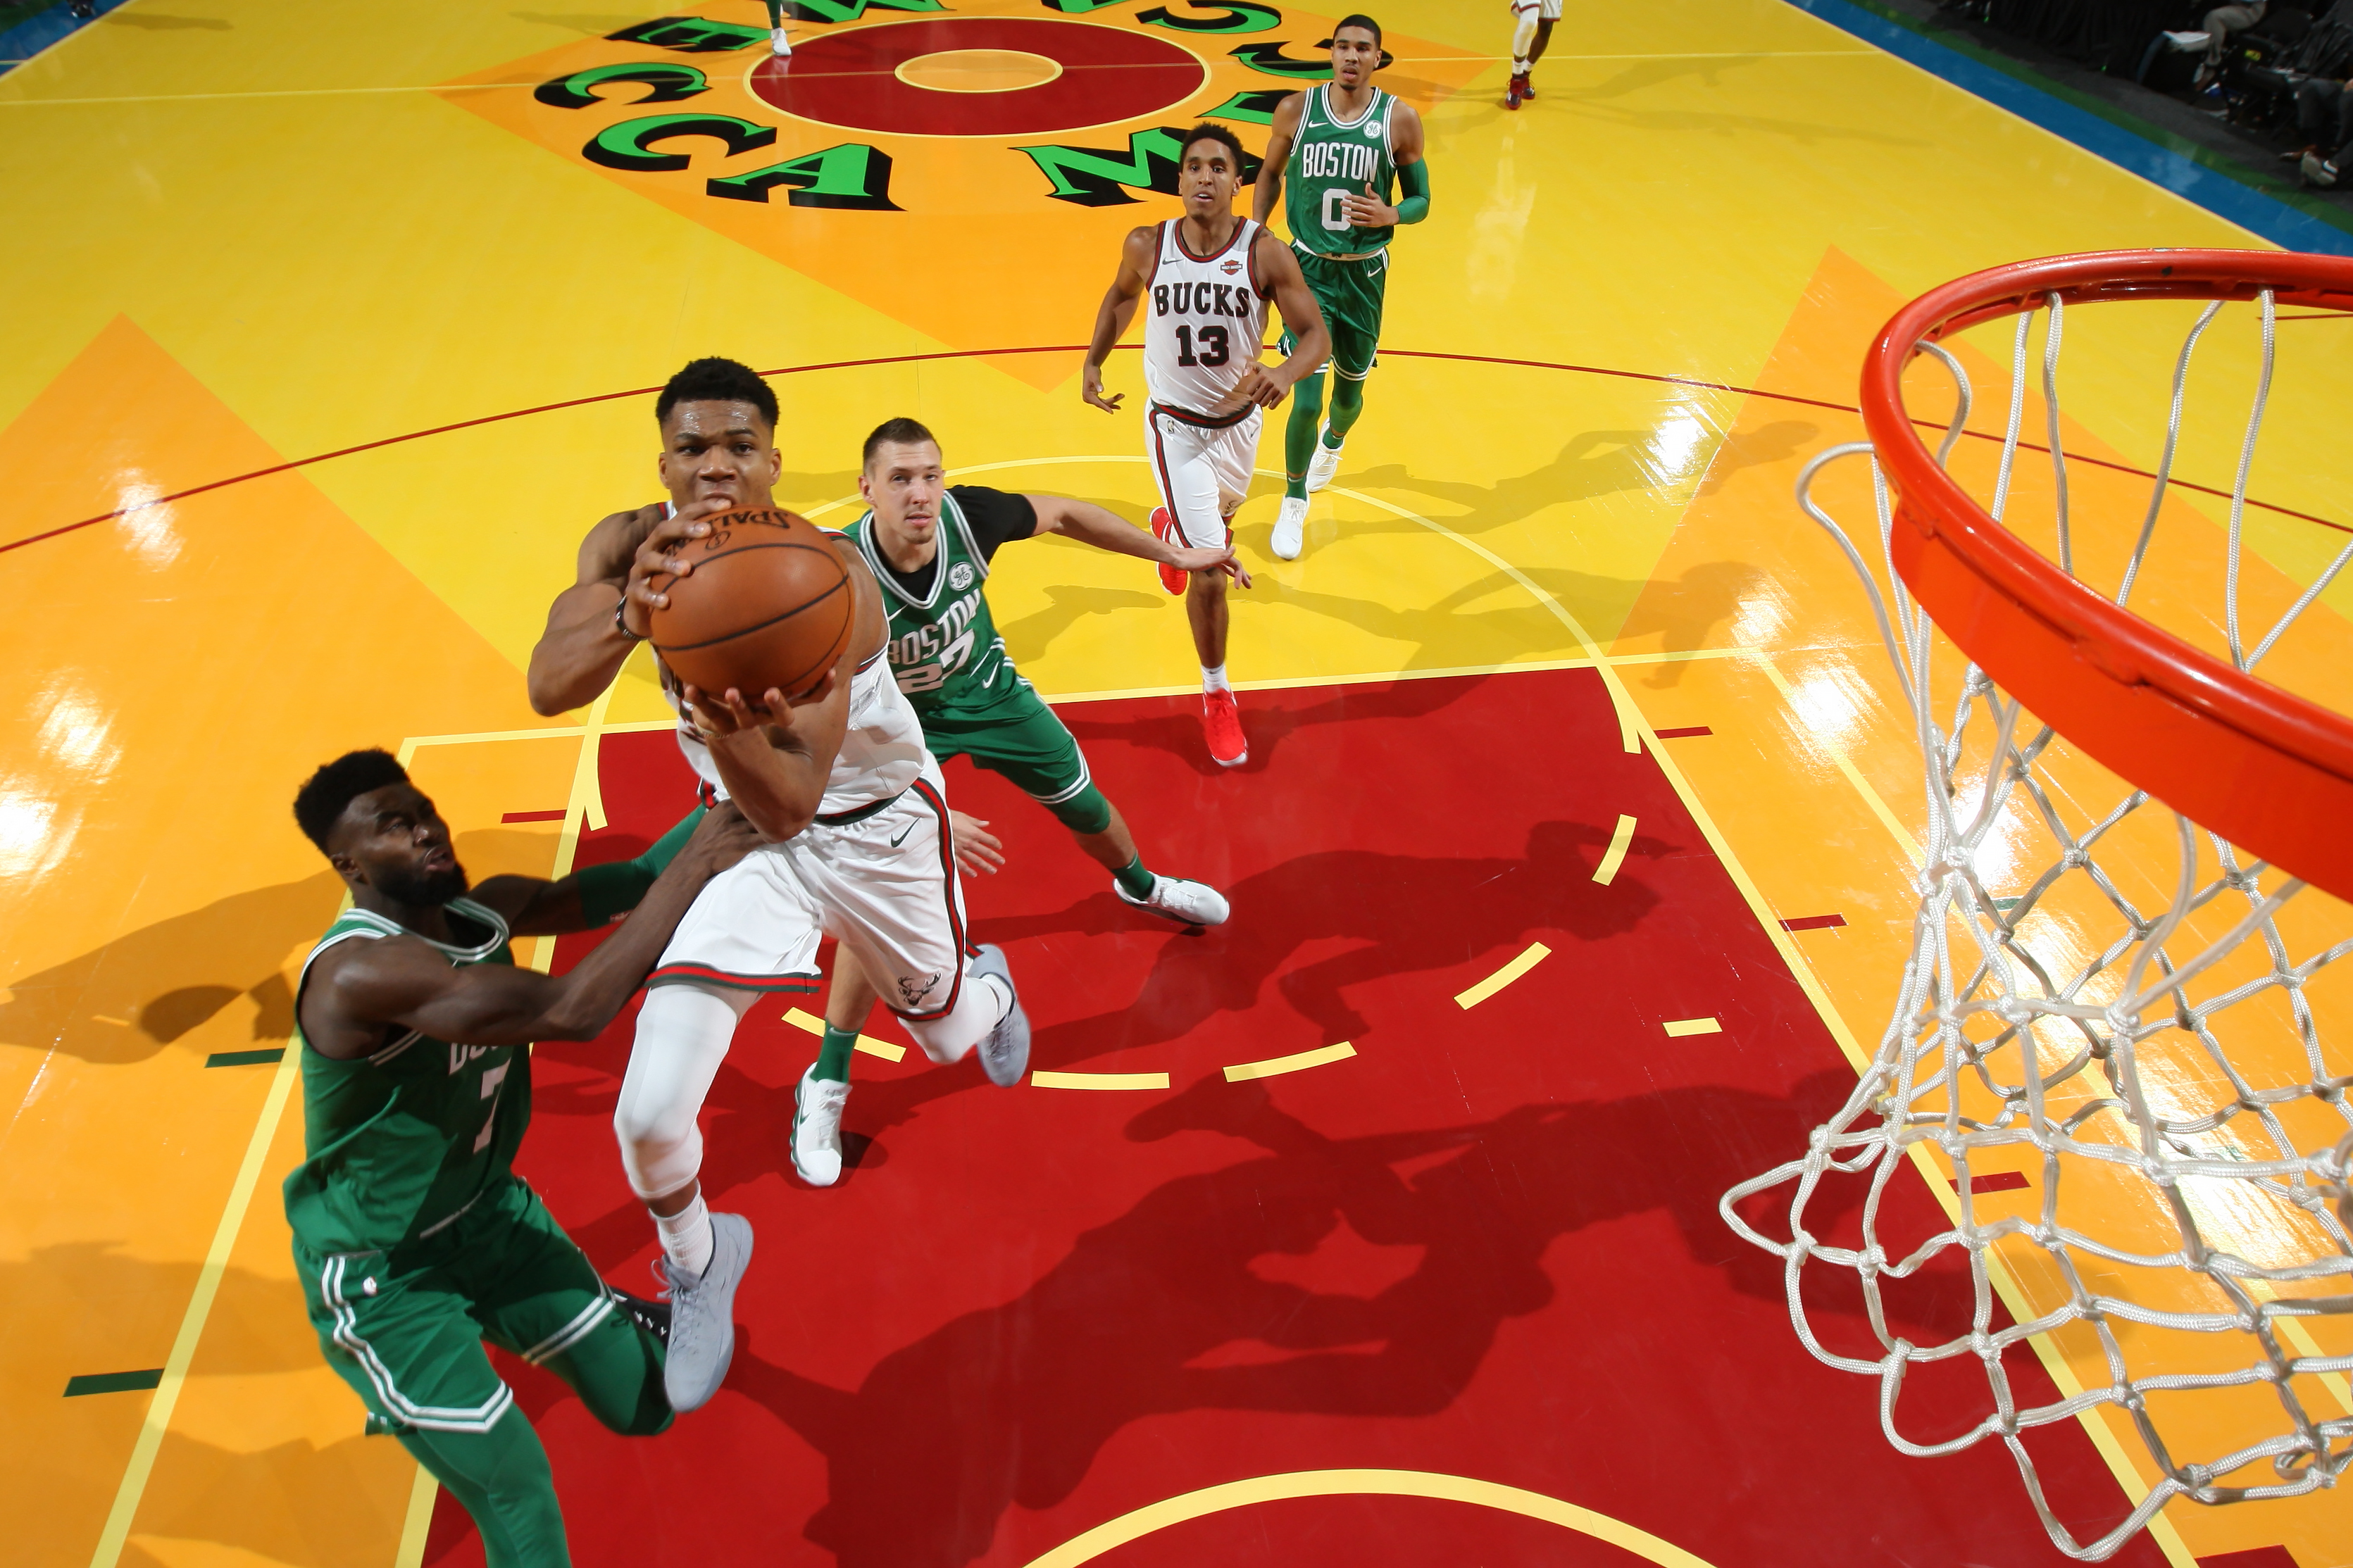 Kyrie Irving and Giannis Antetokounmpo Duel in Boston